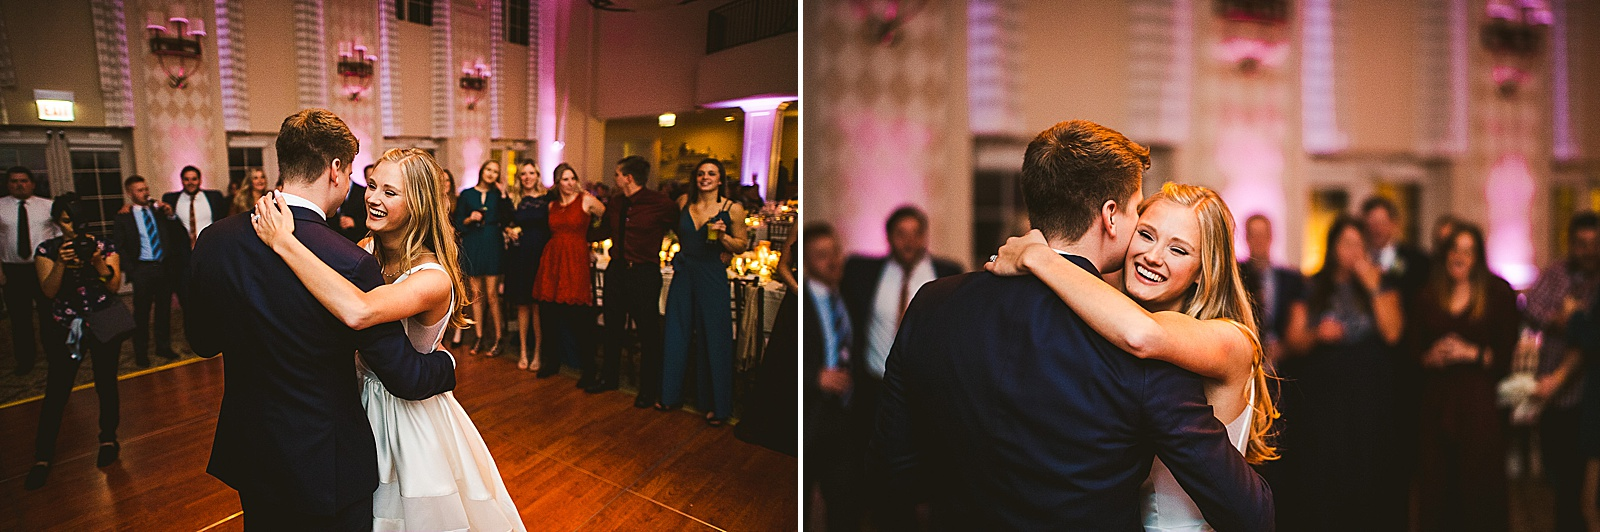 52 first dance by bride and groom photos - The Glen Club Wedding Photos // Katie + Nick